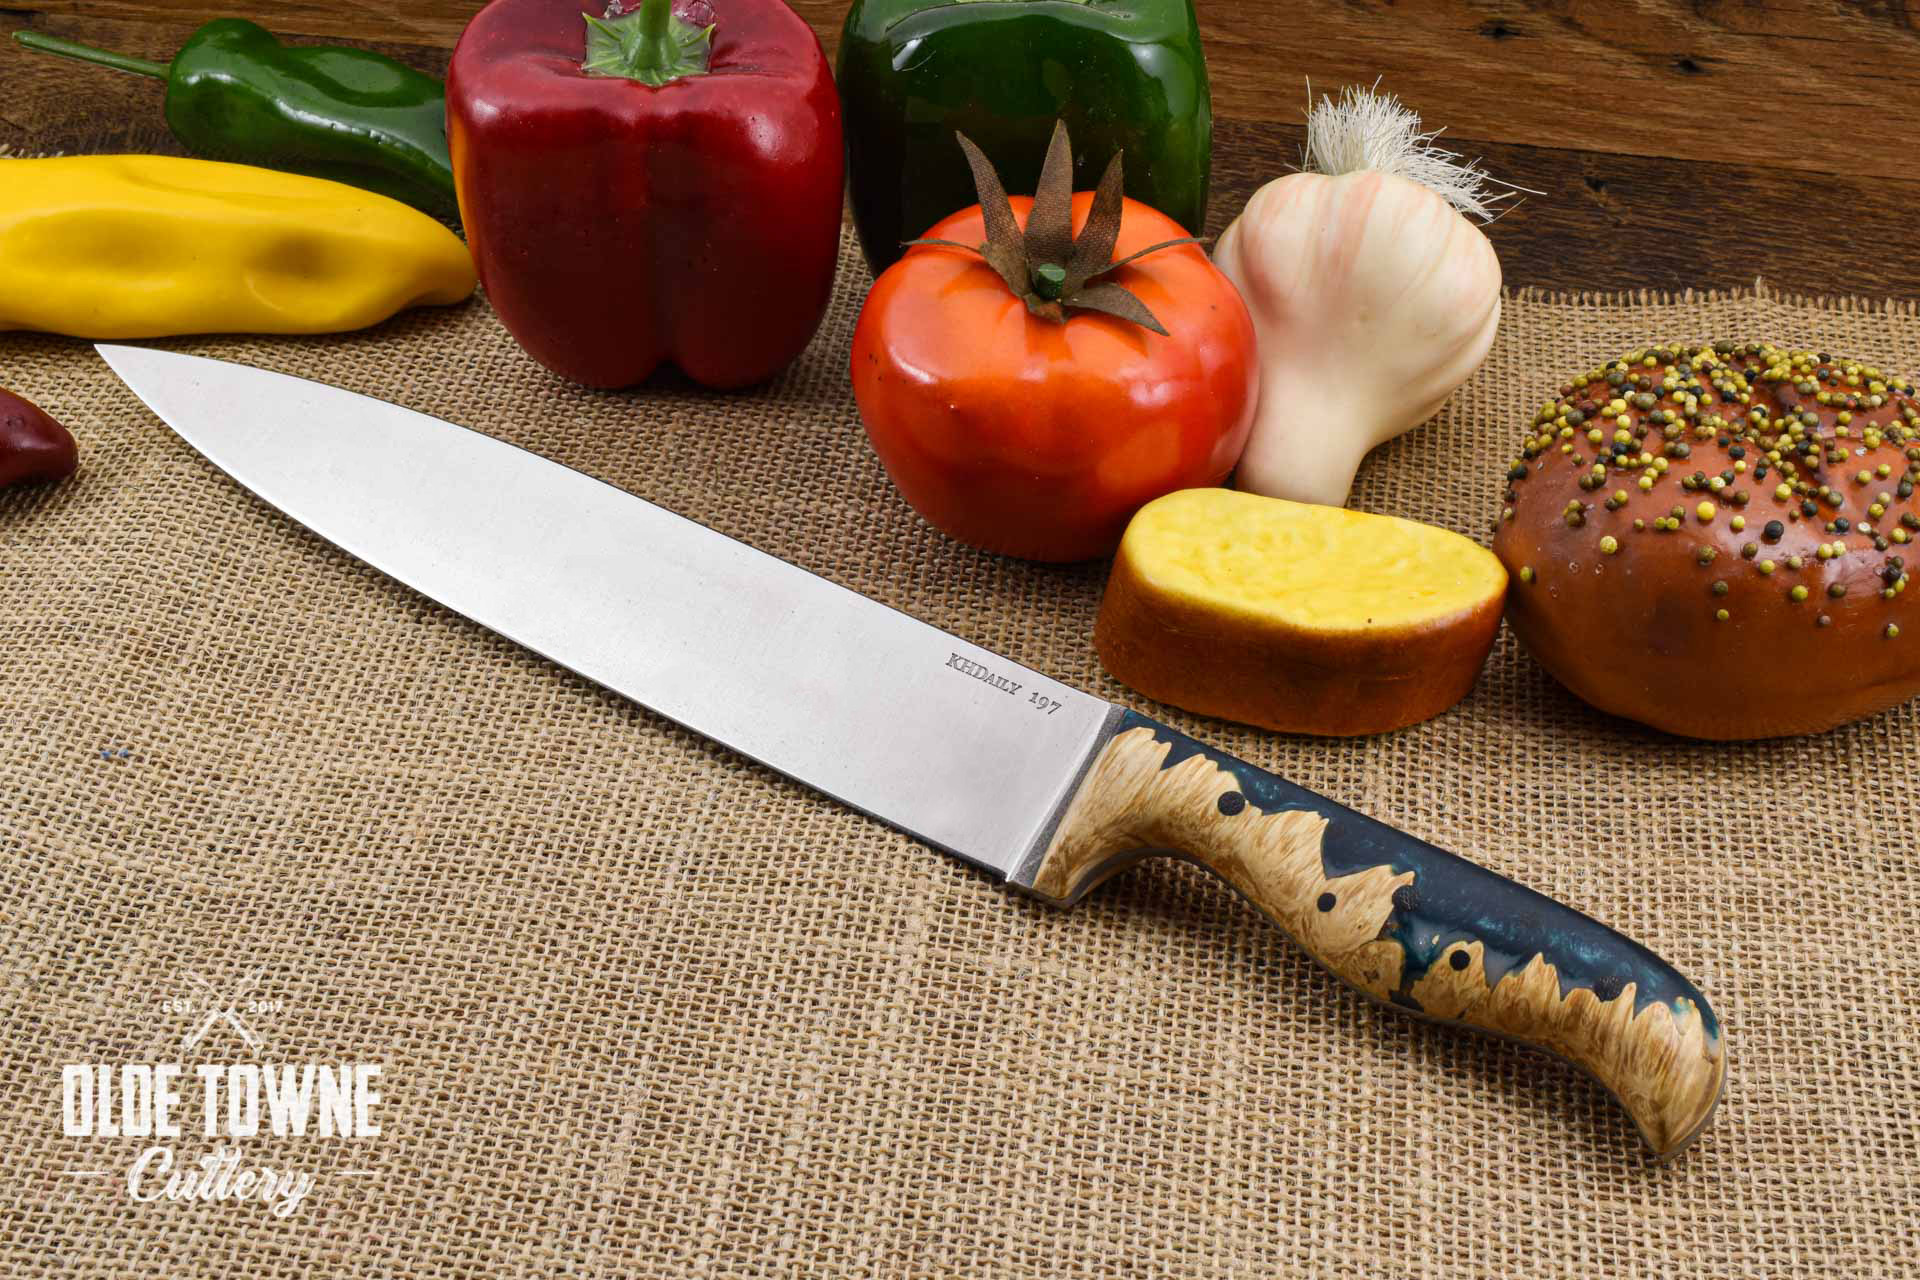 "KH Daily 10"" Carving Knife #197 (C) J Hue Green Resin Wood"